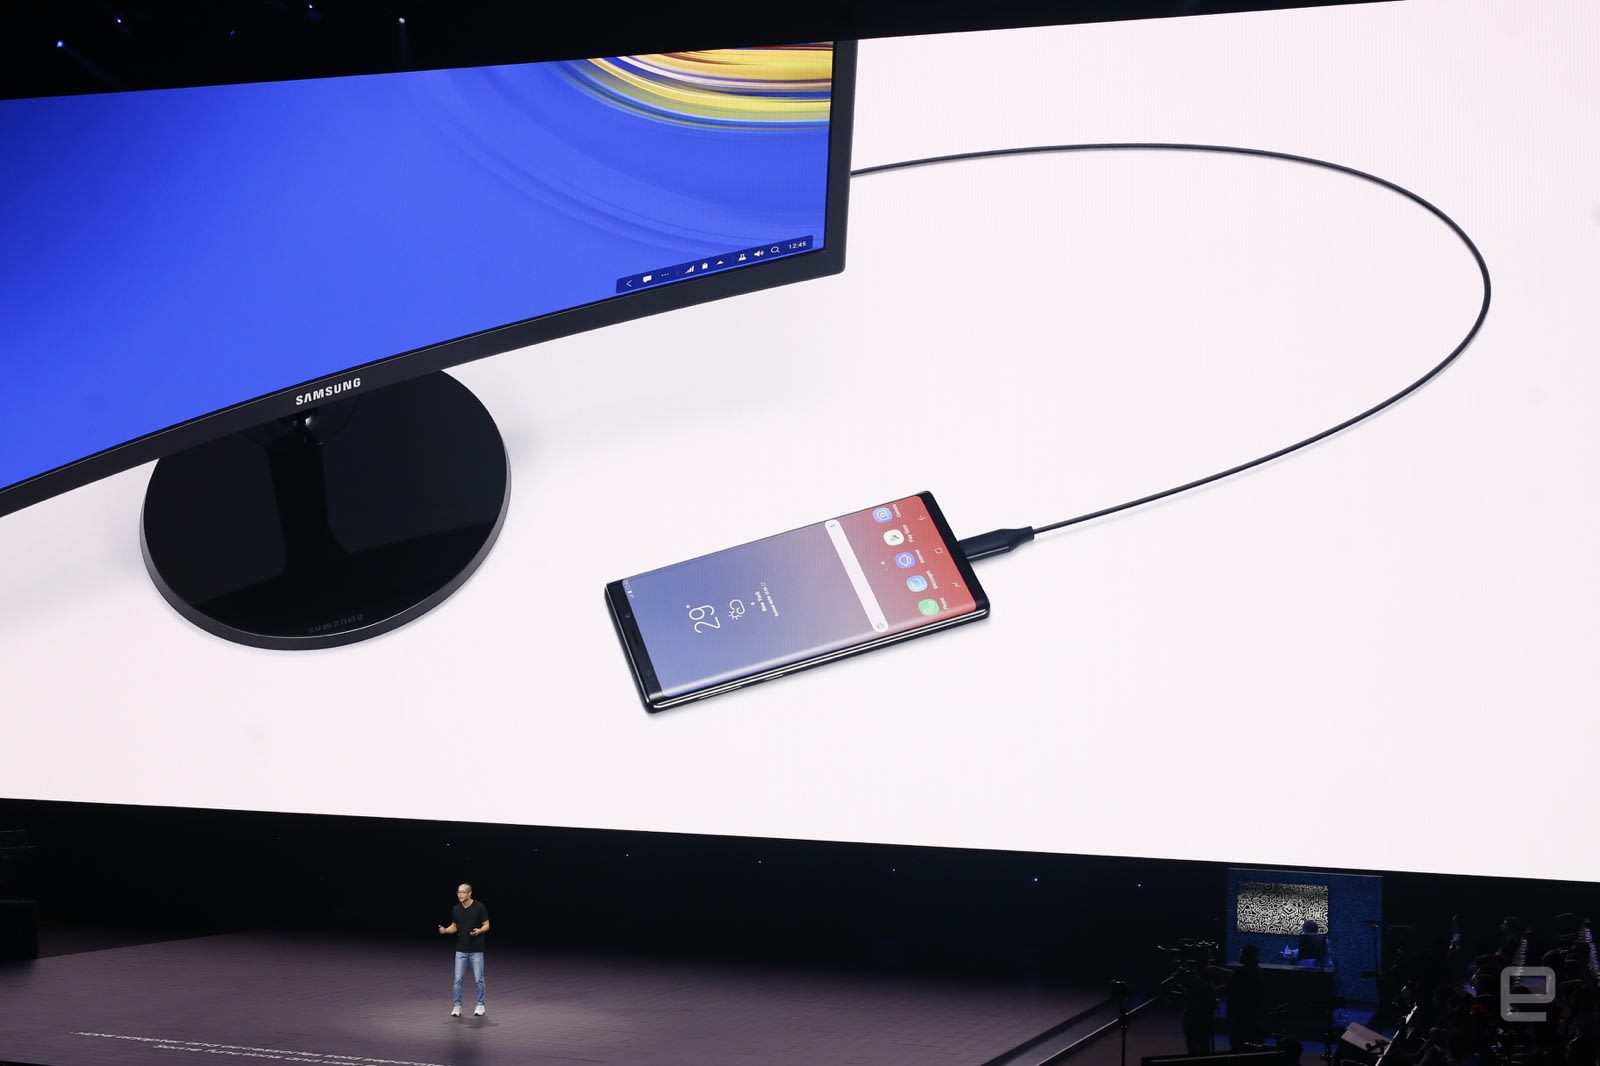 Samsung's Galaxy Note 9 has a much more useful DeX desktop mode